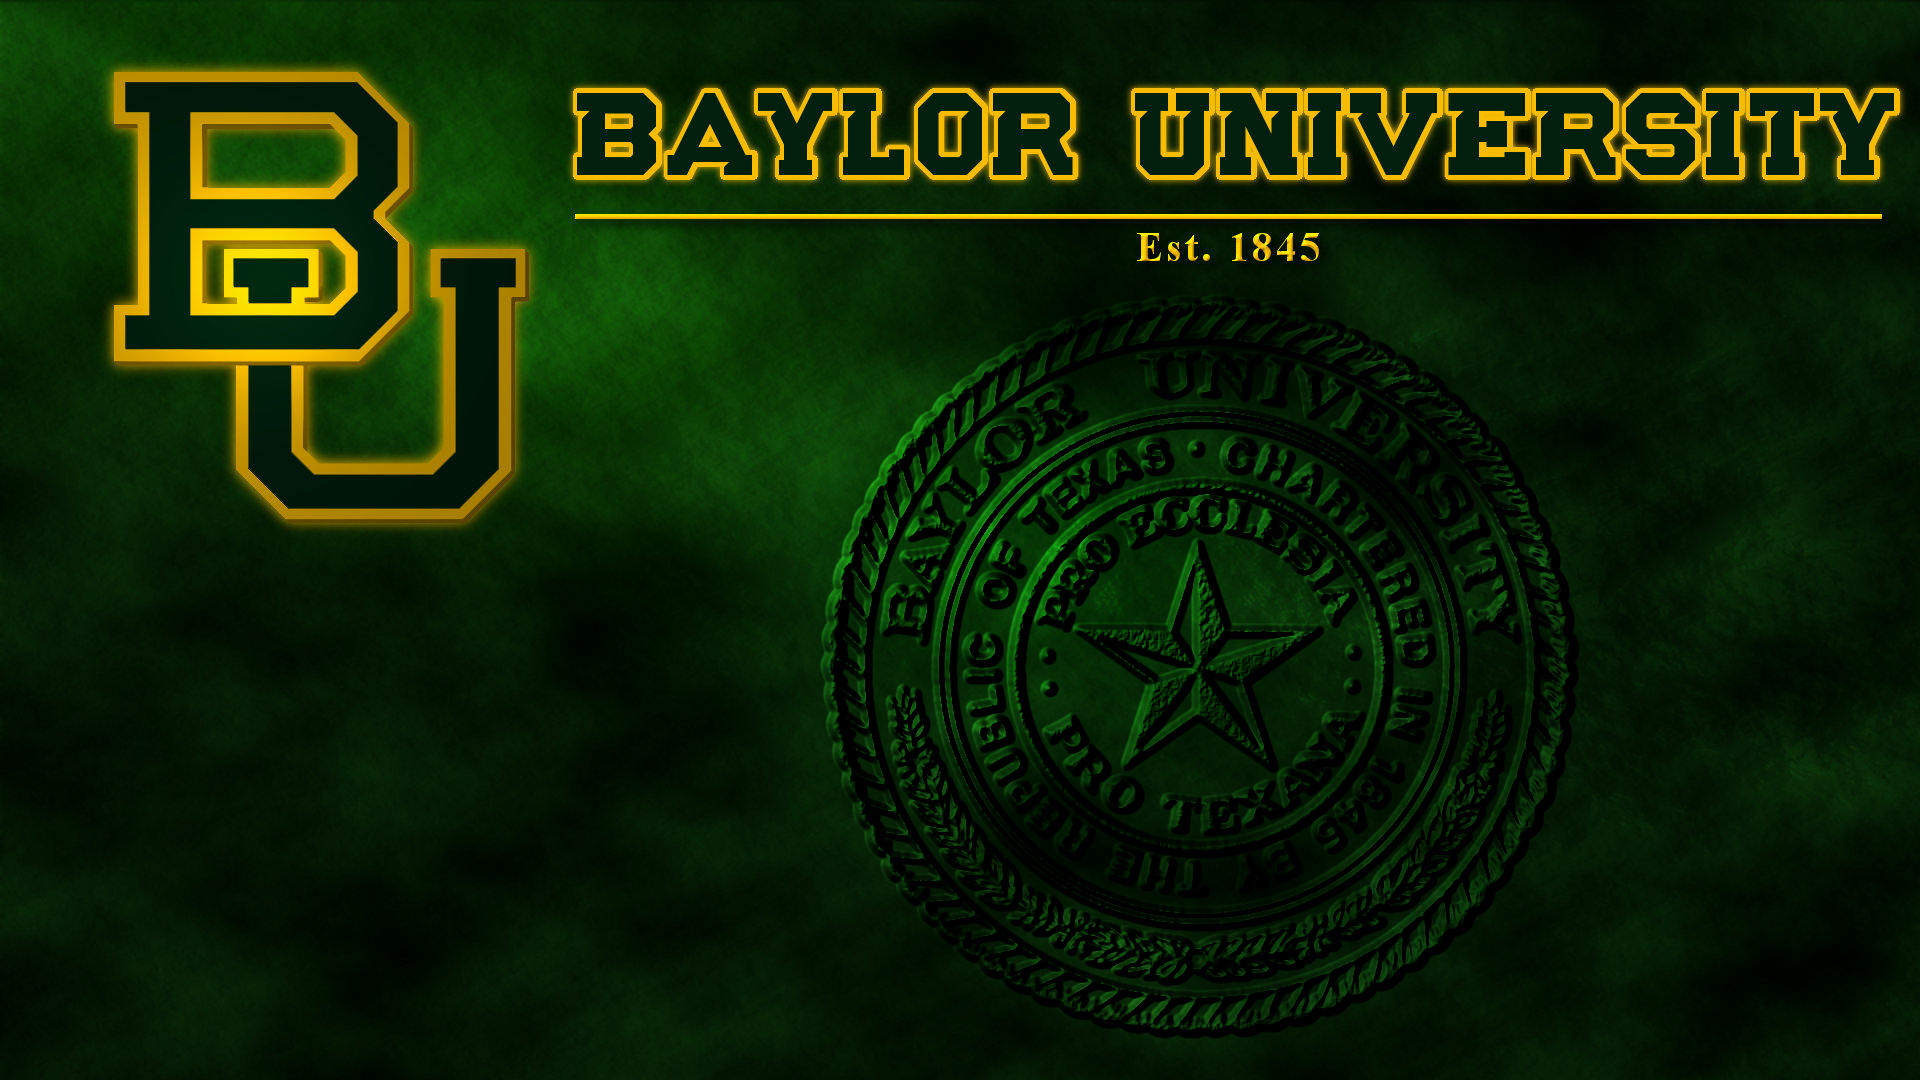 Baylor Wallpapers Browser Themes More for Bears Fans 1920x1080